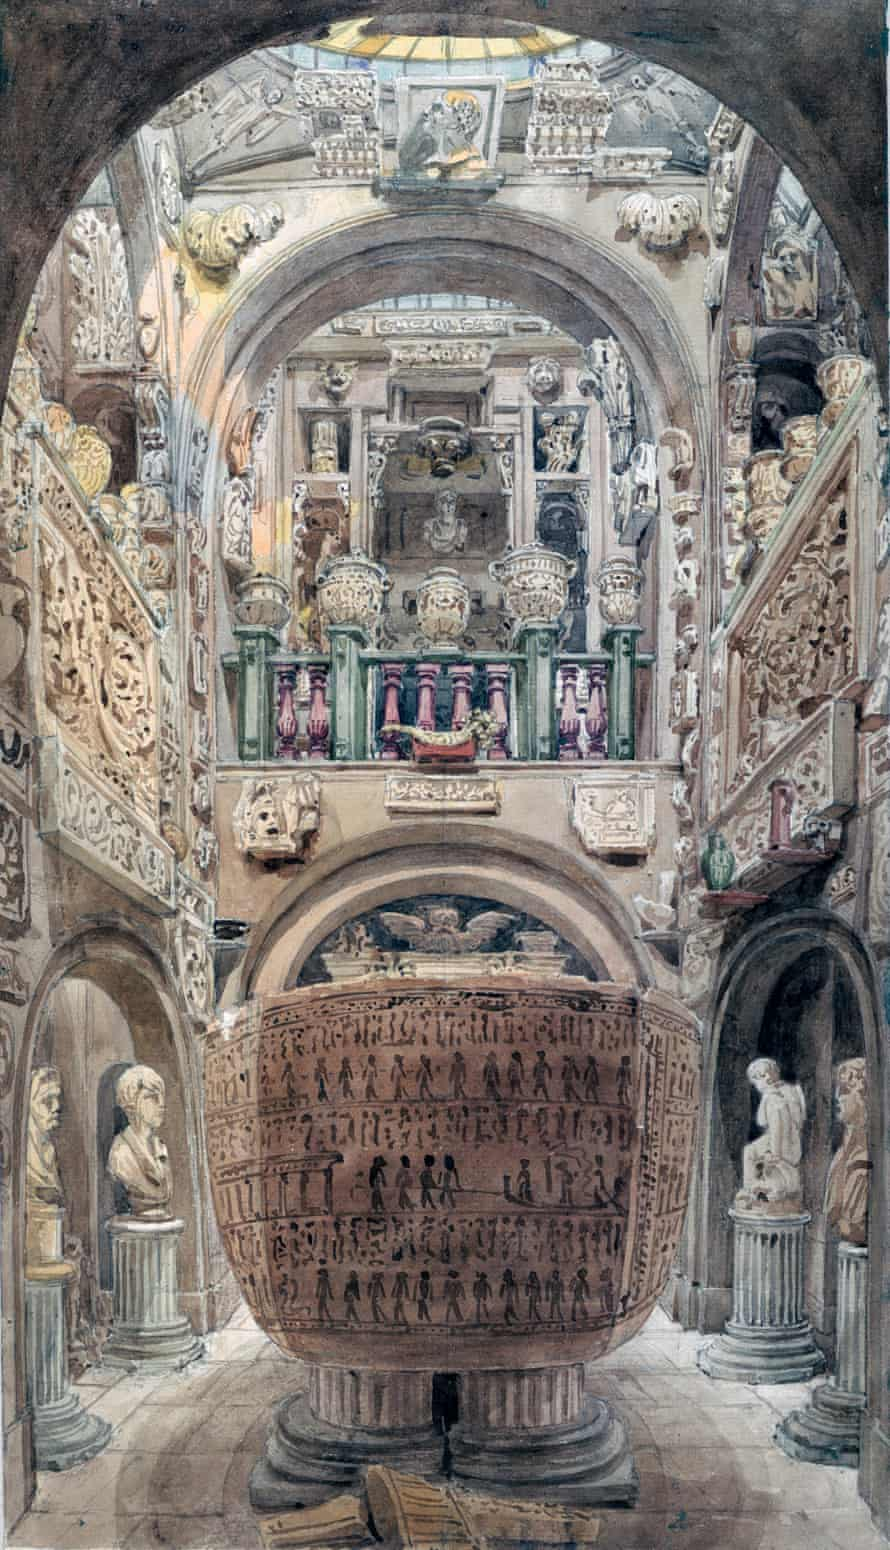 An illustraion of 'the Sepulchral Chamber' at Sir John Soane's house, viewed from the head of the sarcophagus, 8 September 1825.